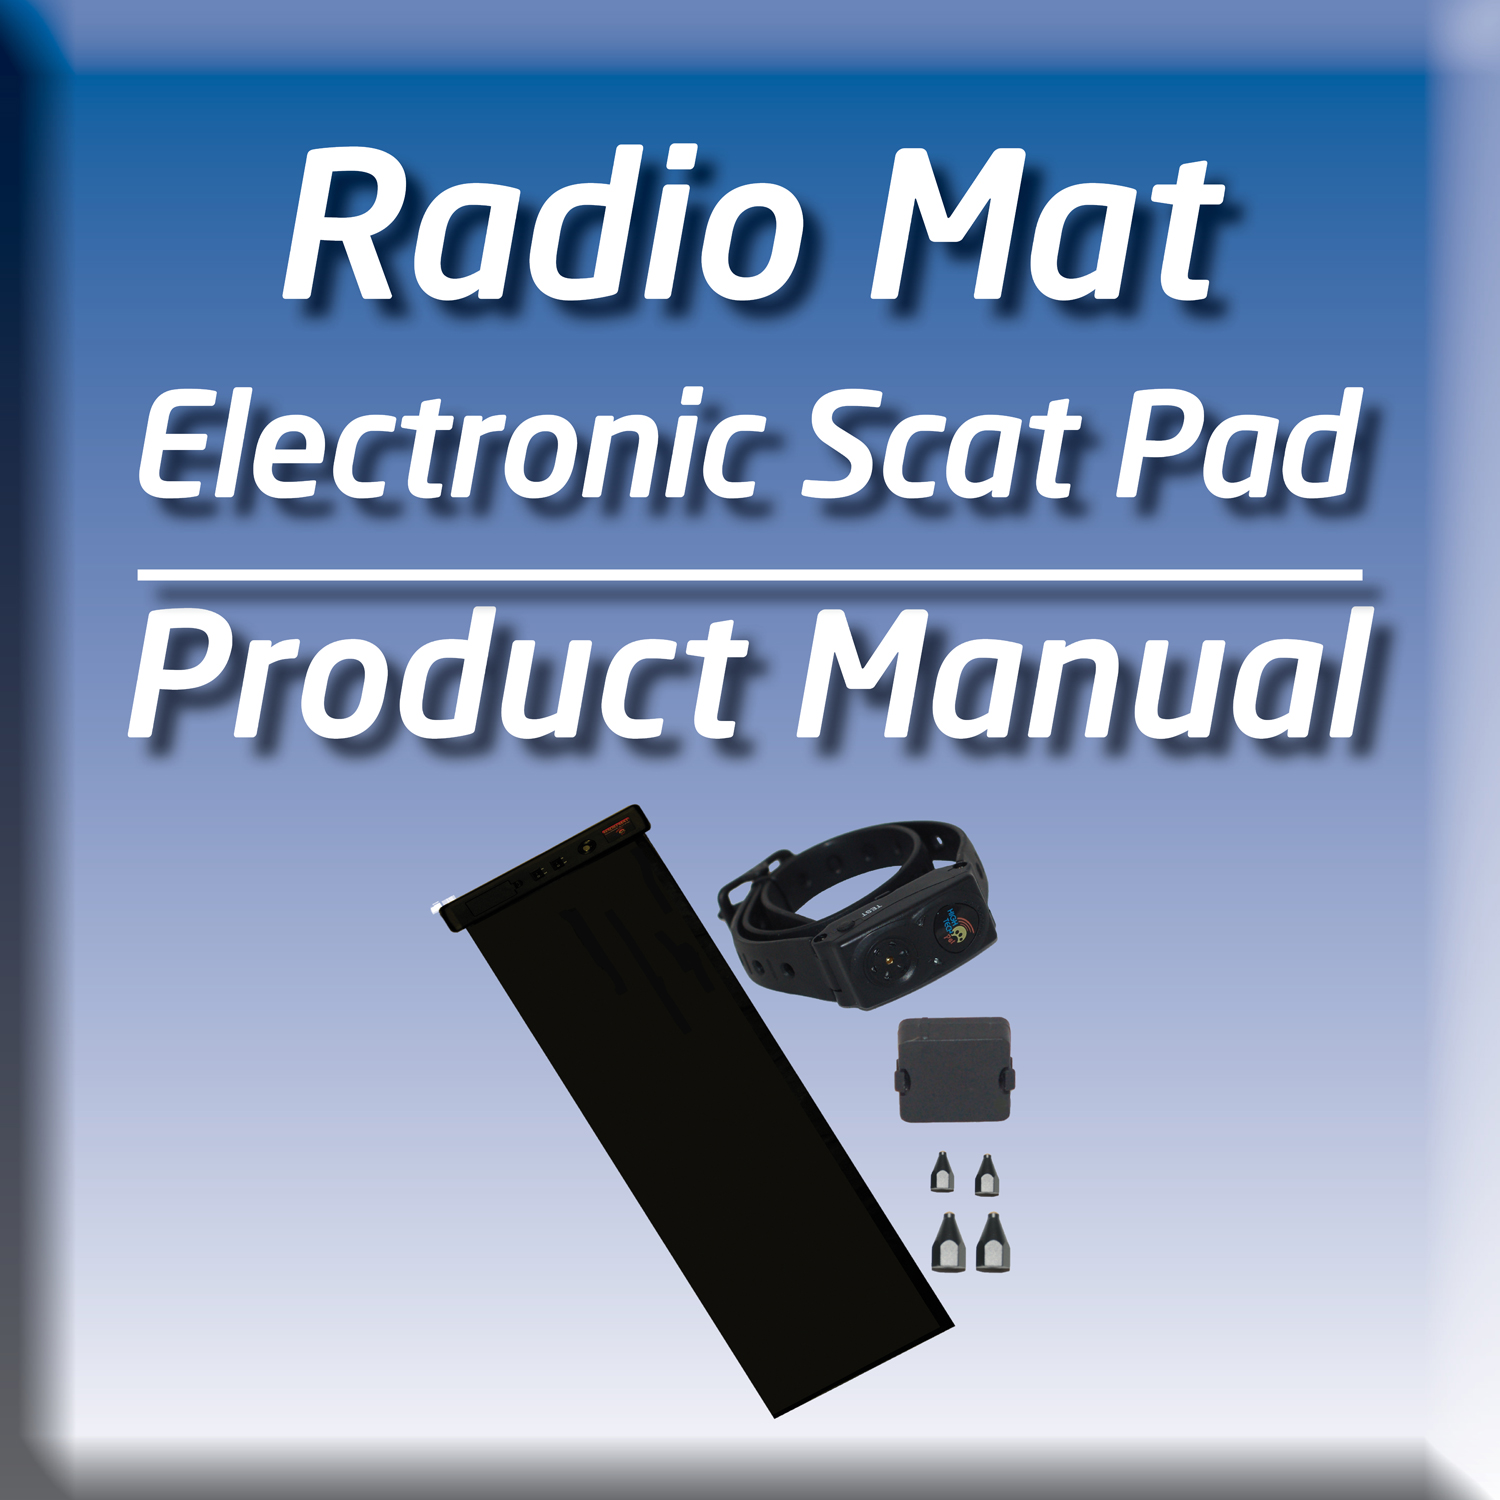 Our radio mat training manual is here to help